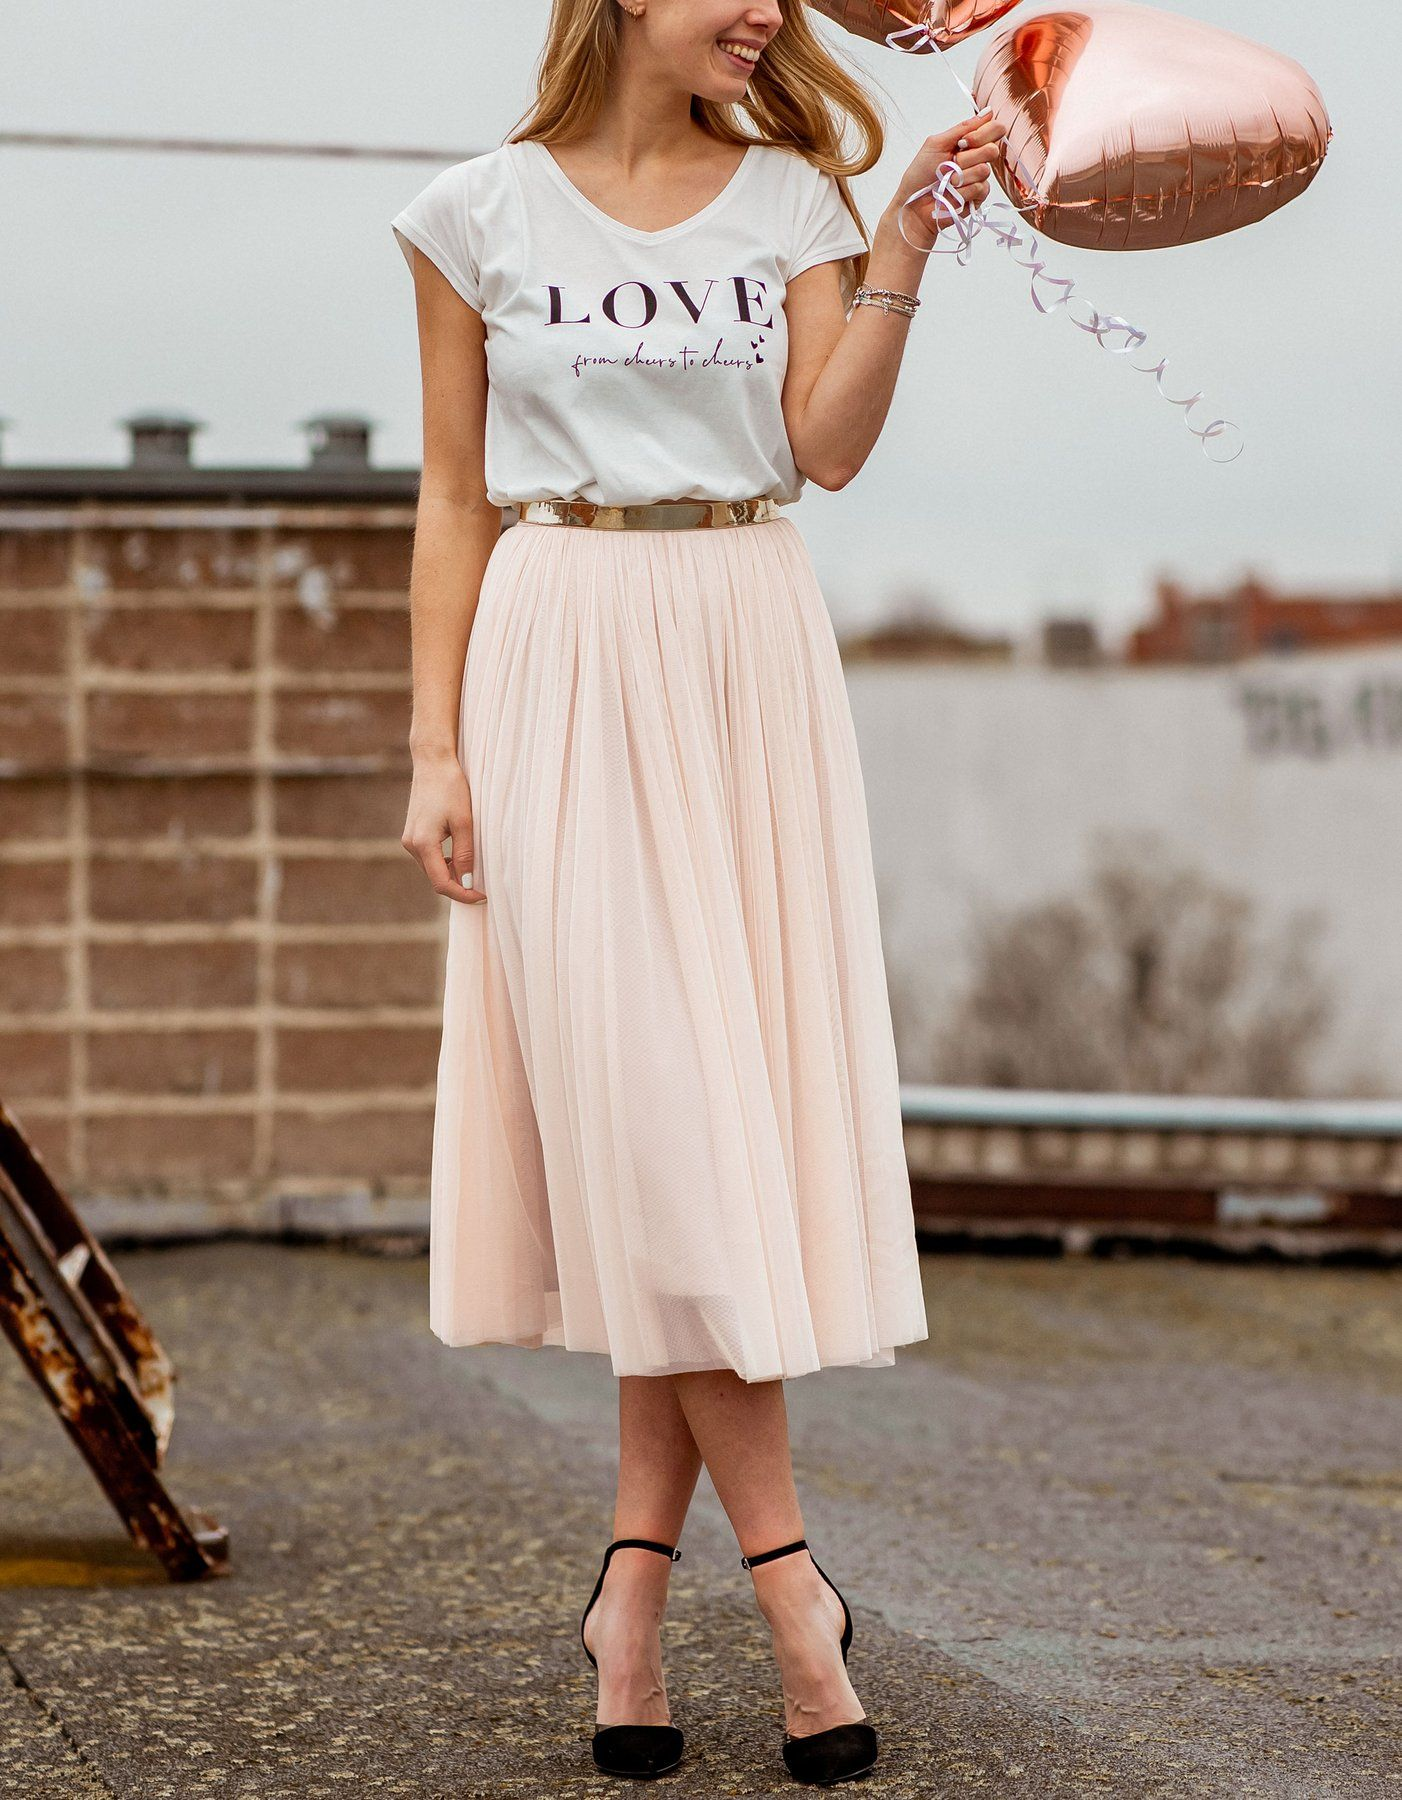 CONSTANT LOVE Tüll Rock Midi Peach Blush